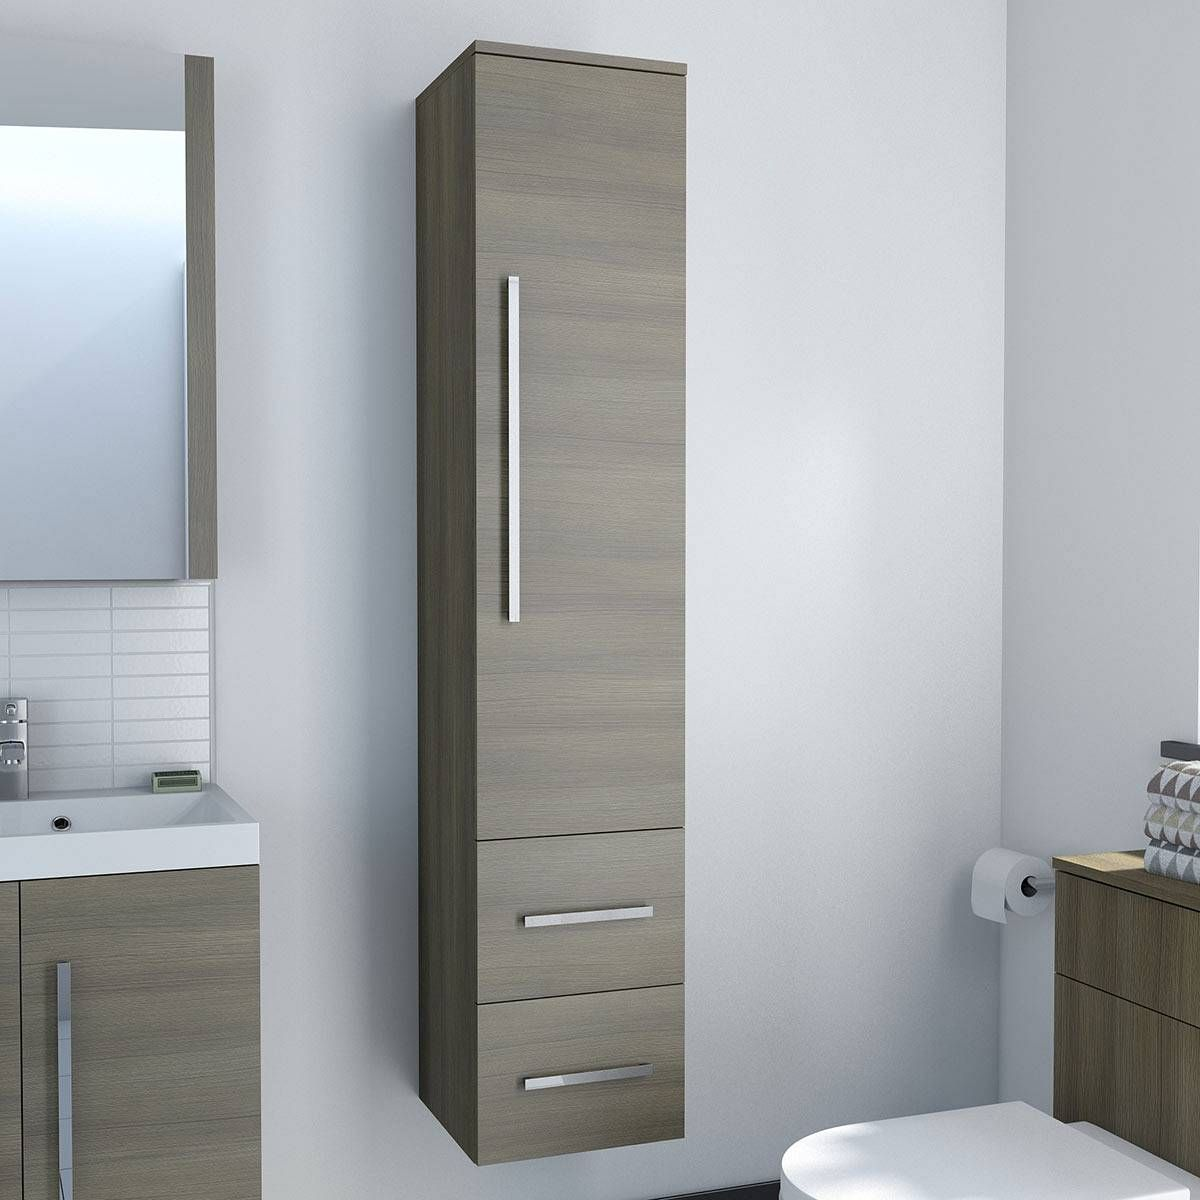 interesting tall bathroom cabinets makes property exceptional - Bathroom Cabinets Tall